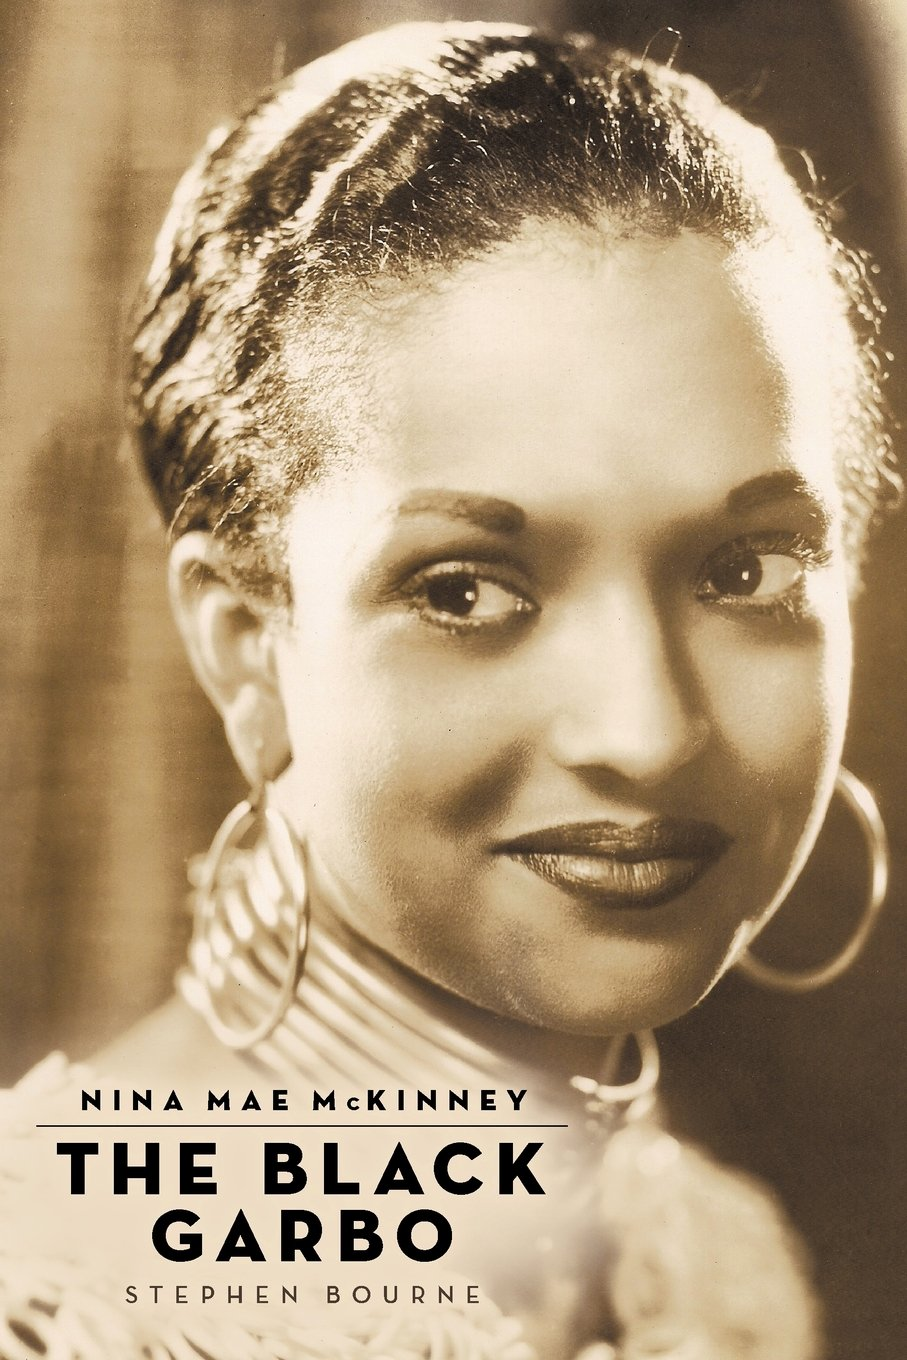 Watch Nina Mae McKinney video